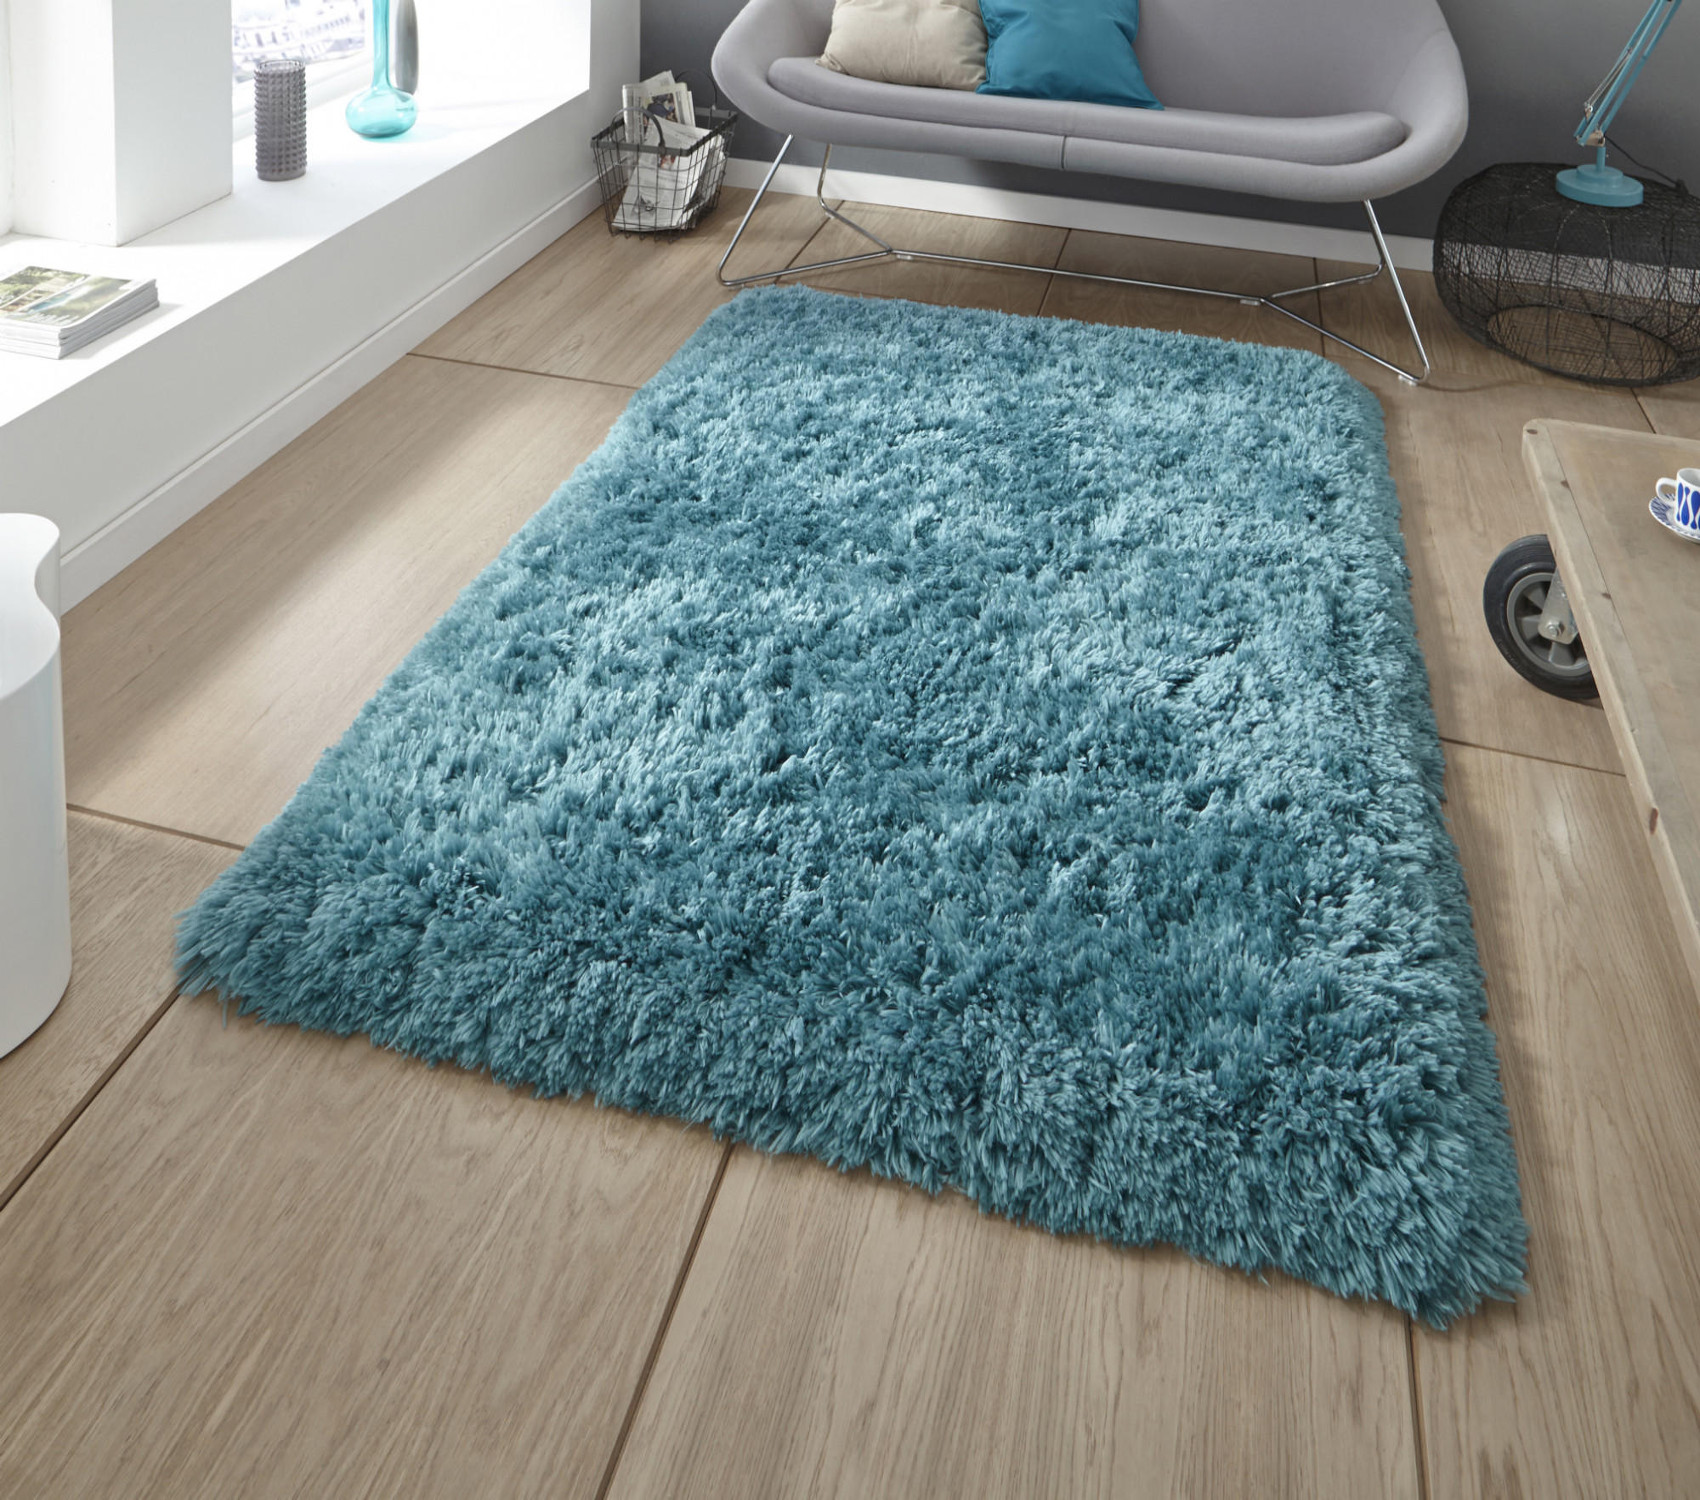 Polar Hand Tufted Shaggy Rug Thick 8.5cm Pile Soft 100